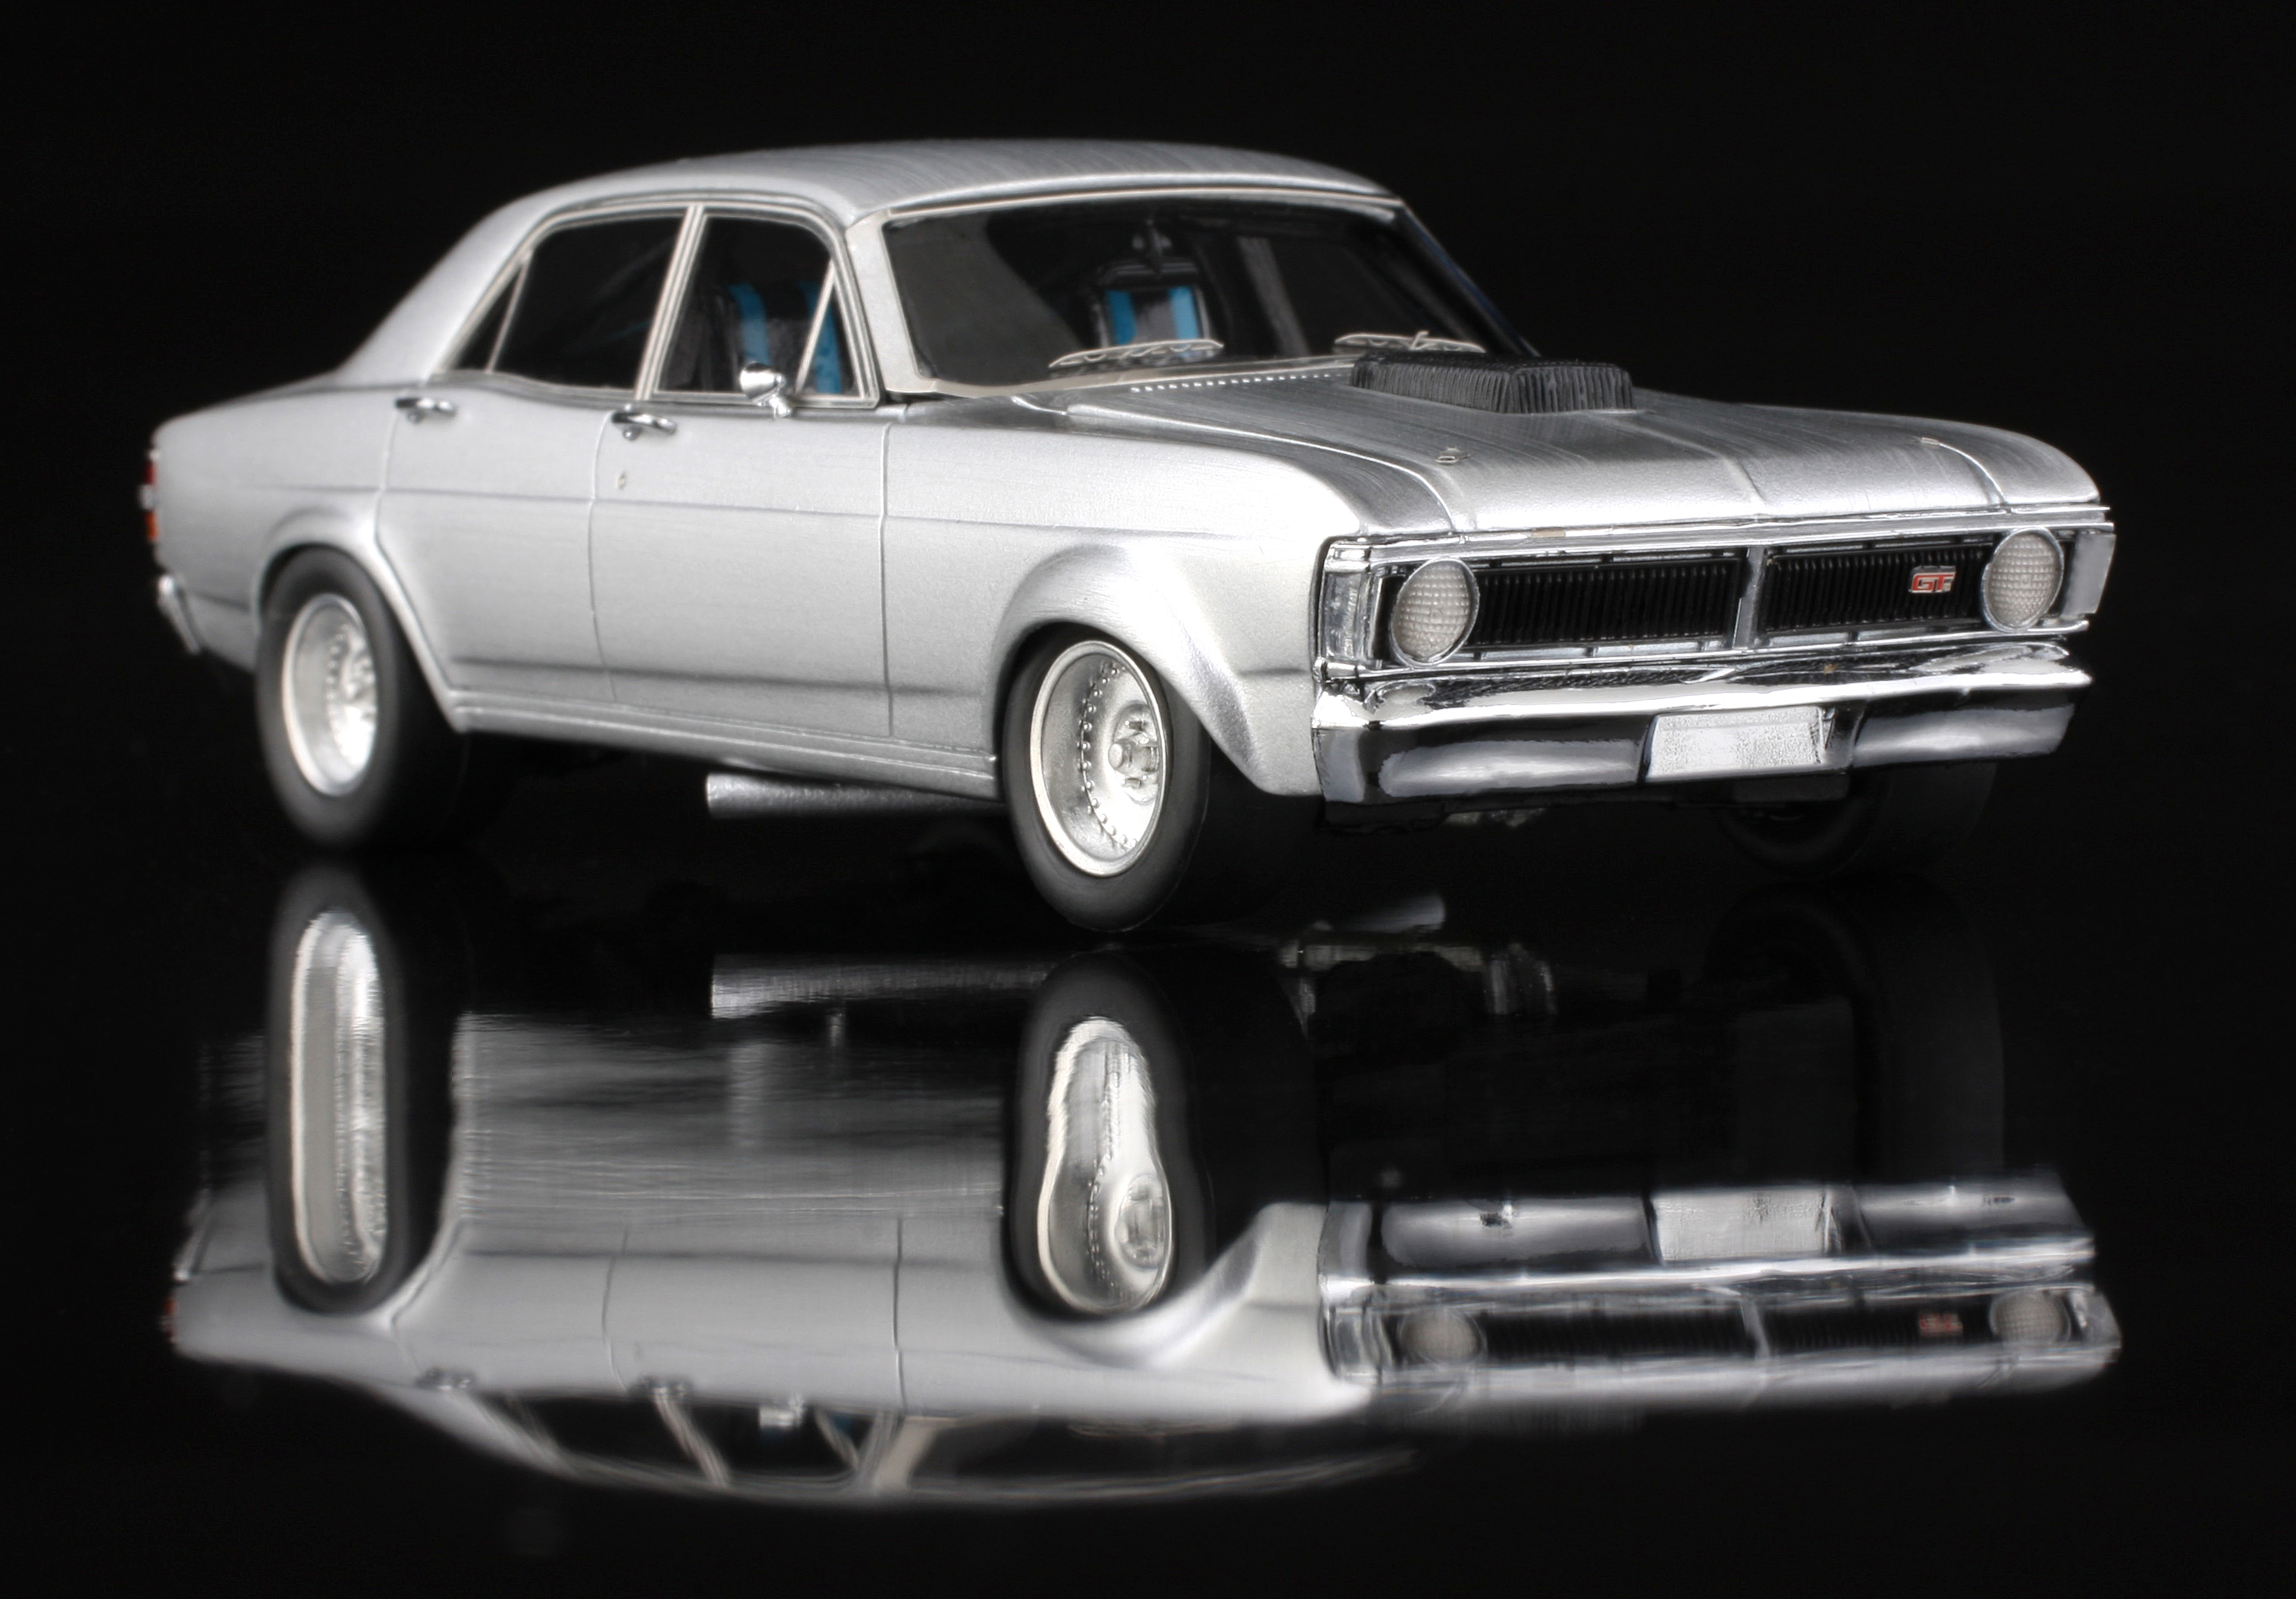 AMR – 1:43 'Real Steel' Ford Super Falcon Australia Model Replicas Resin Model Car